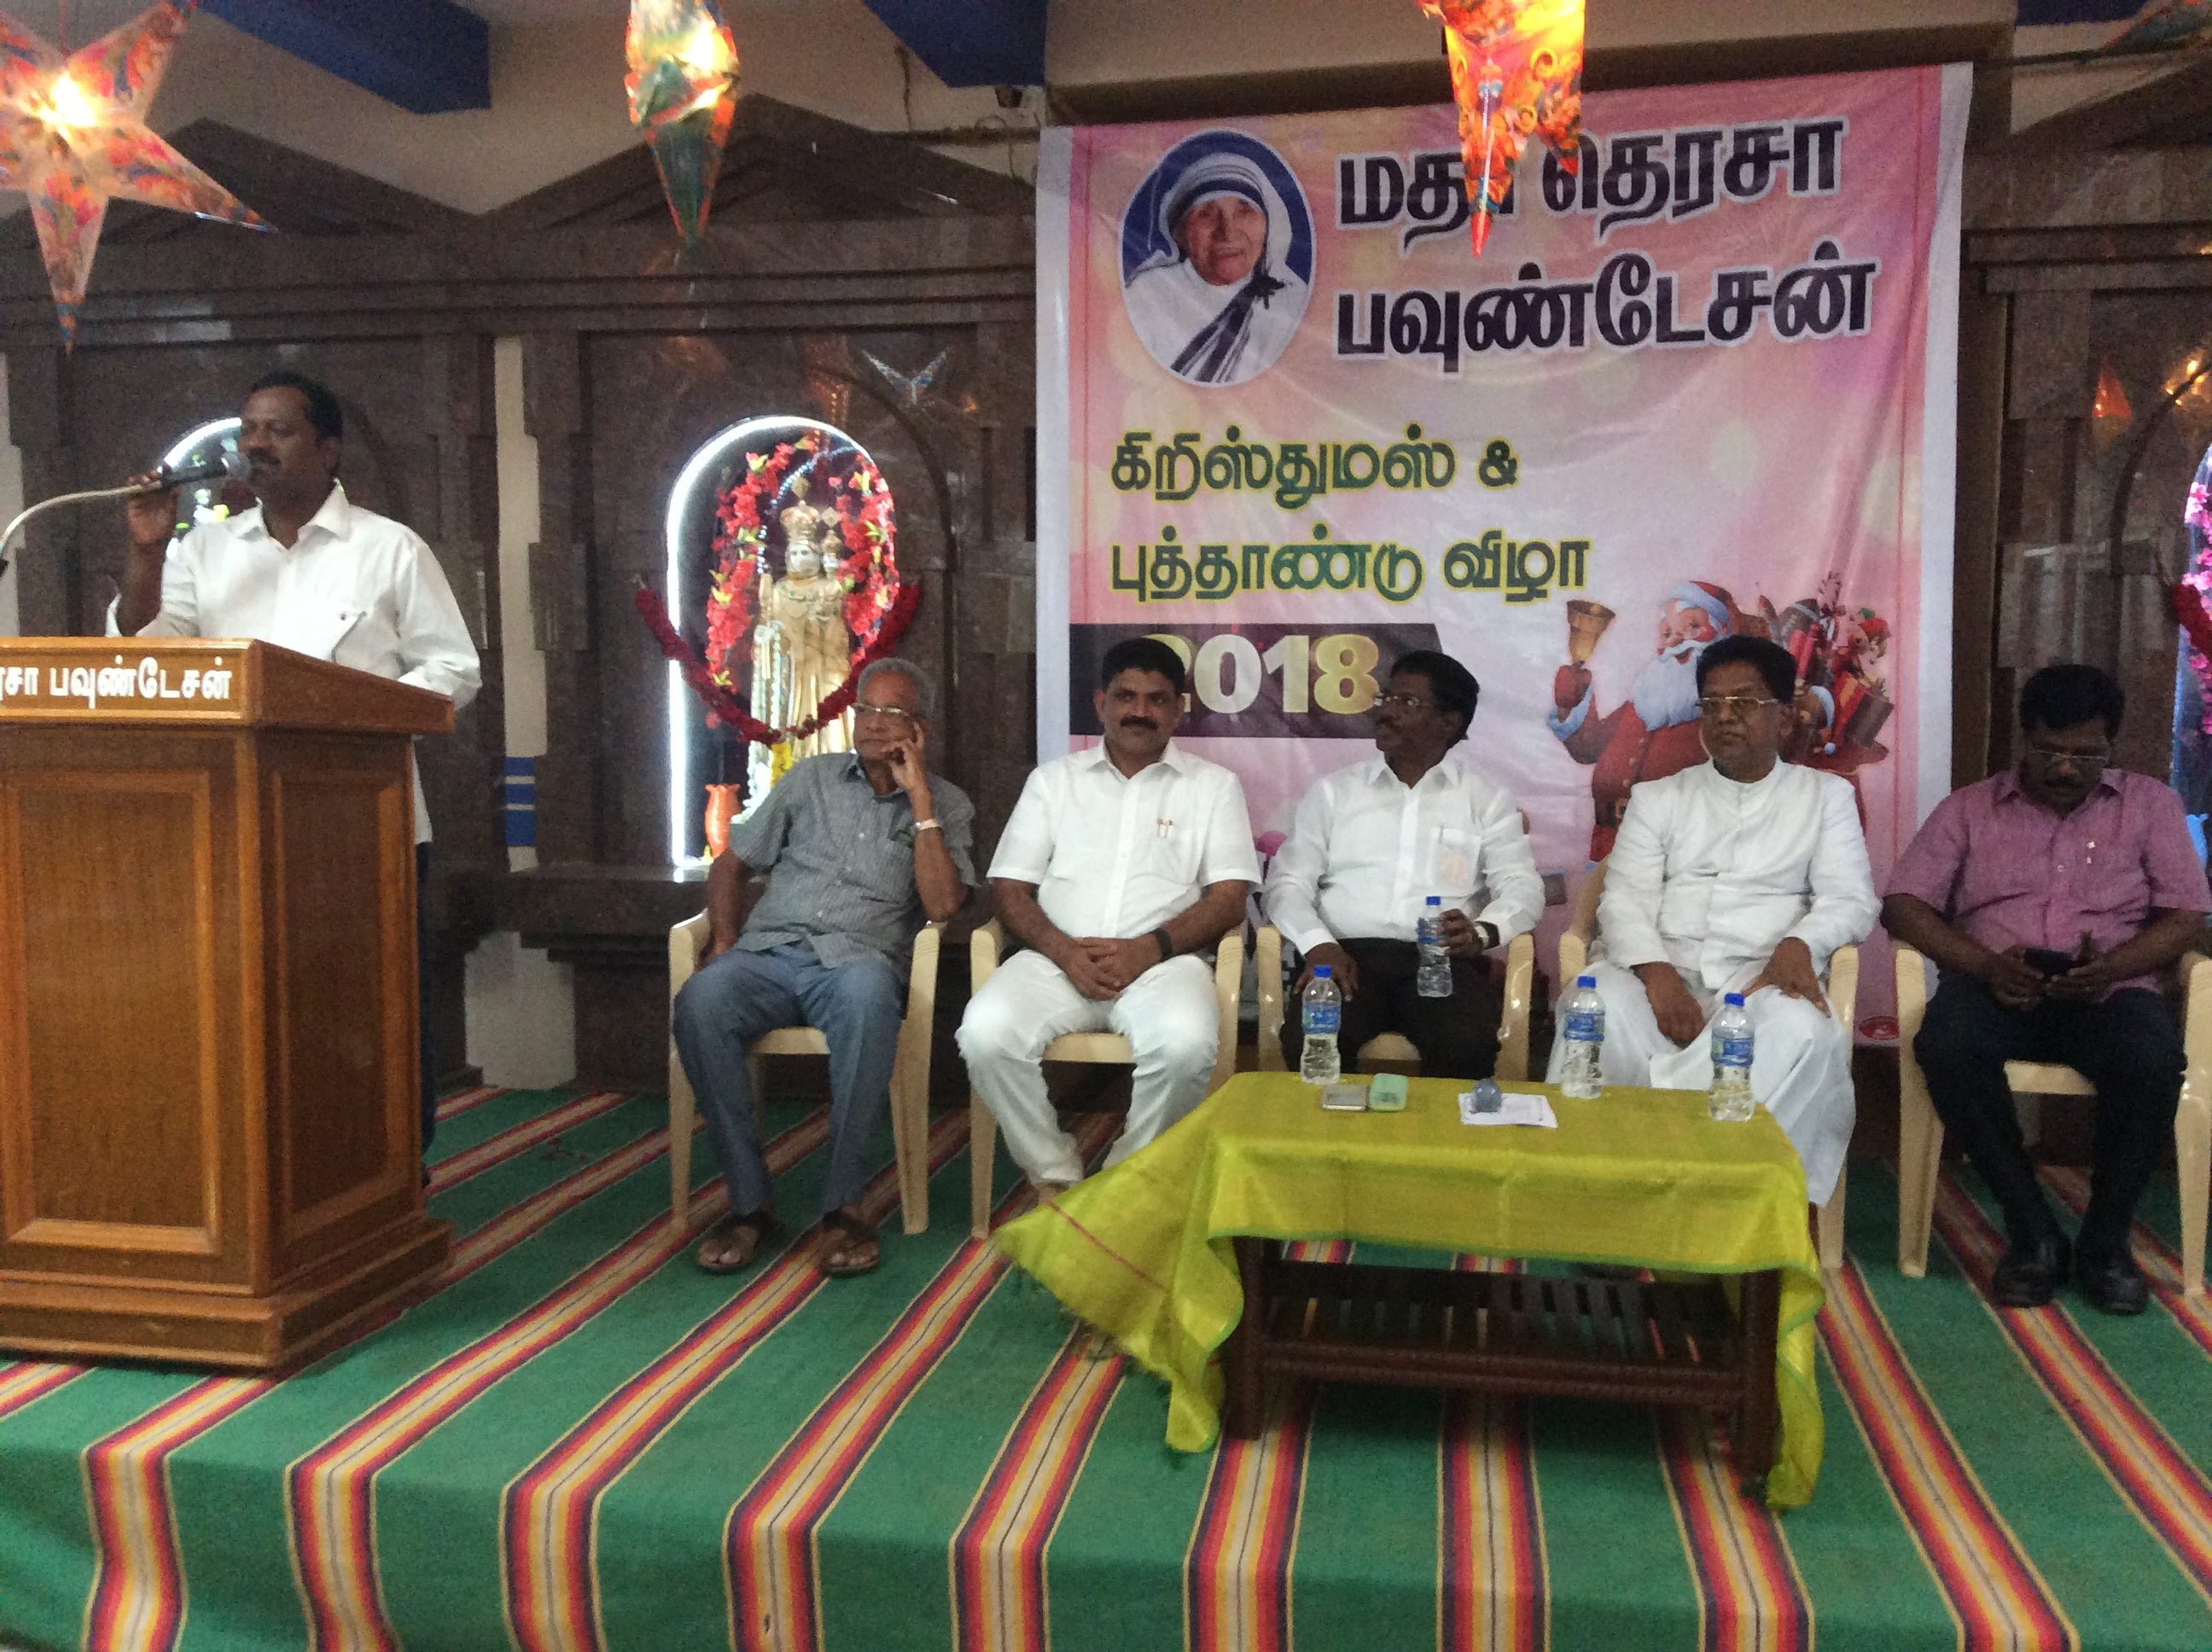 Thiru.N.Sakthivel, DRO addressing the audience.